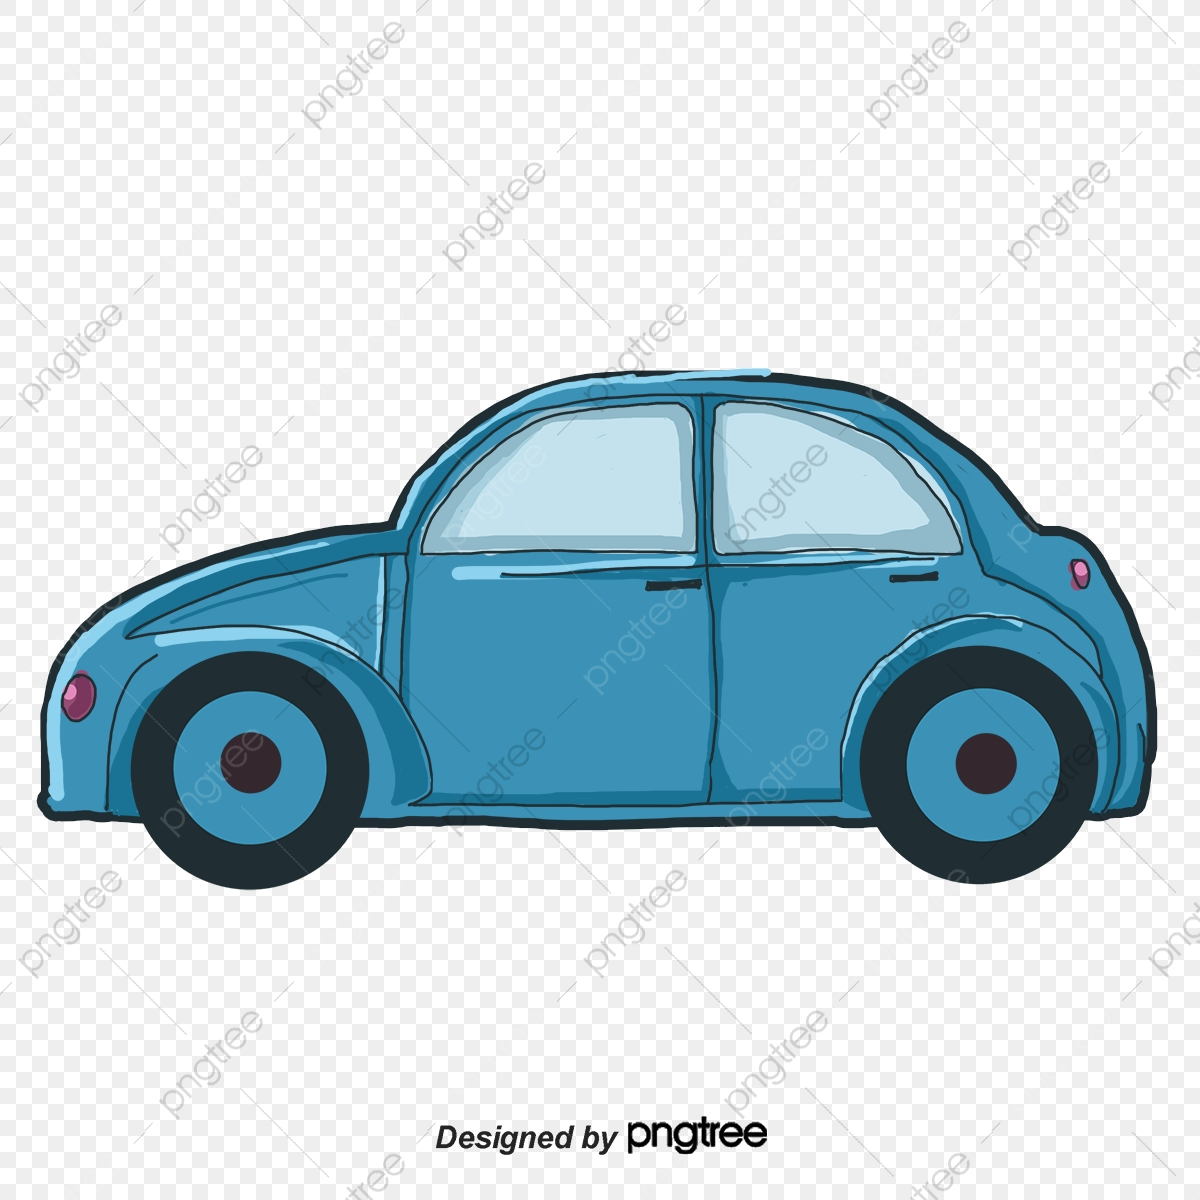 Sports car photos in 720p and racing motor car in 1080p pictures. Cartoon Car Png Images Vector And Psd Files Free Download On Pngtree